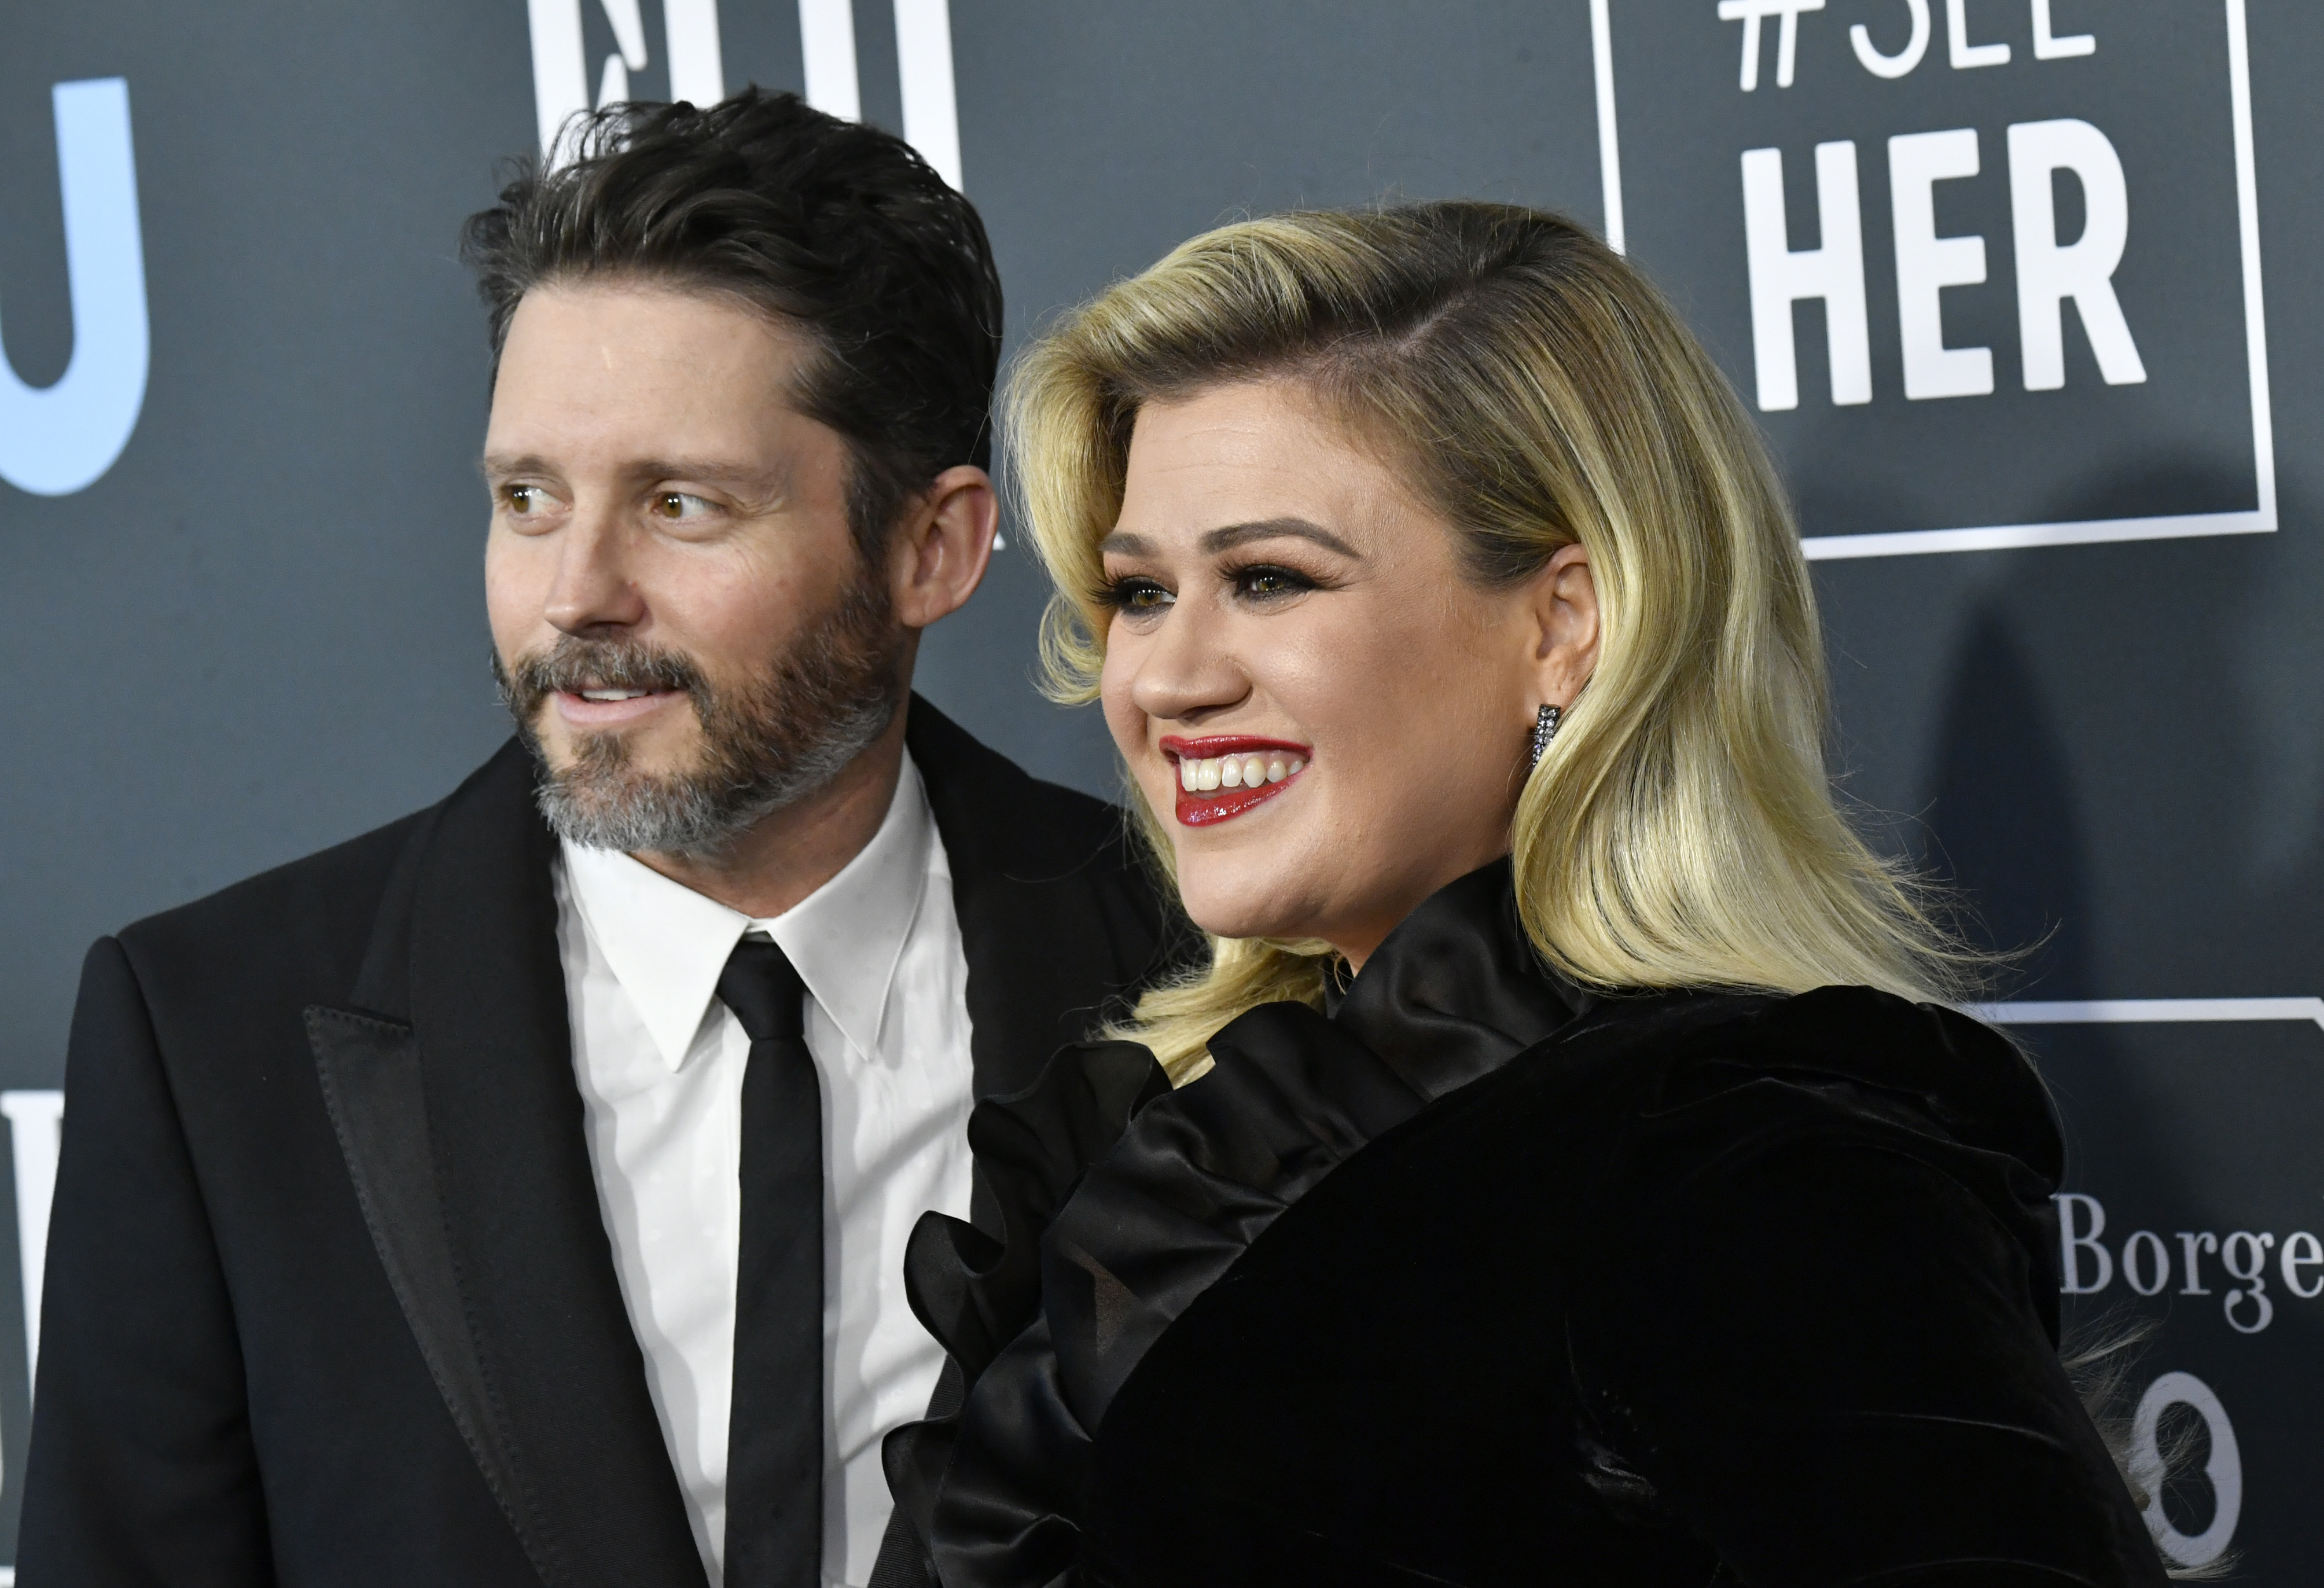 Kelly Clarkson 'definitely didn't see anything coming that came'